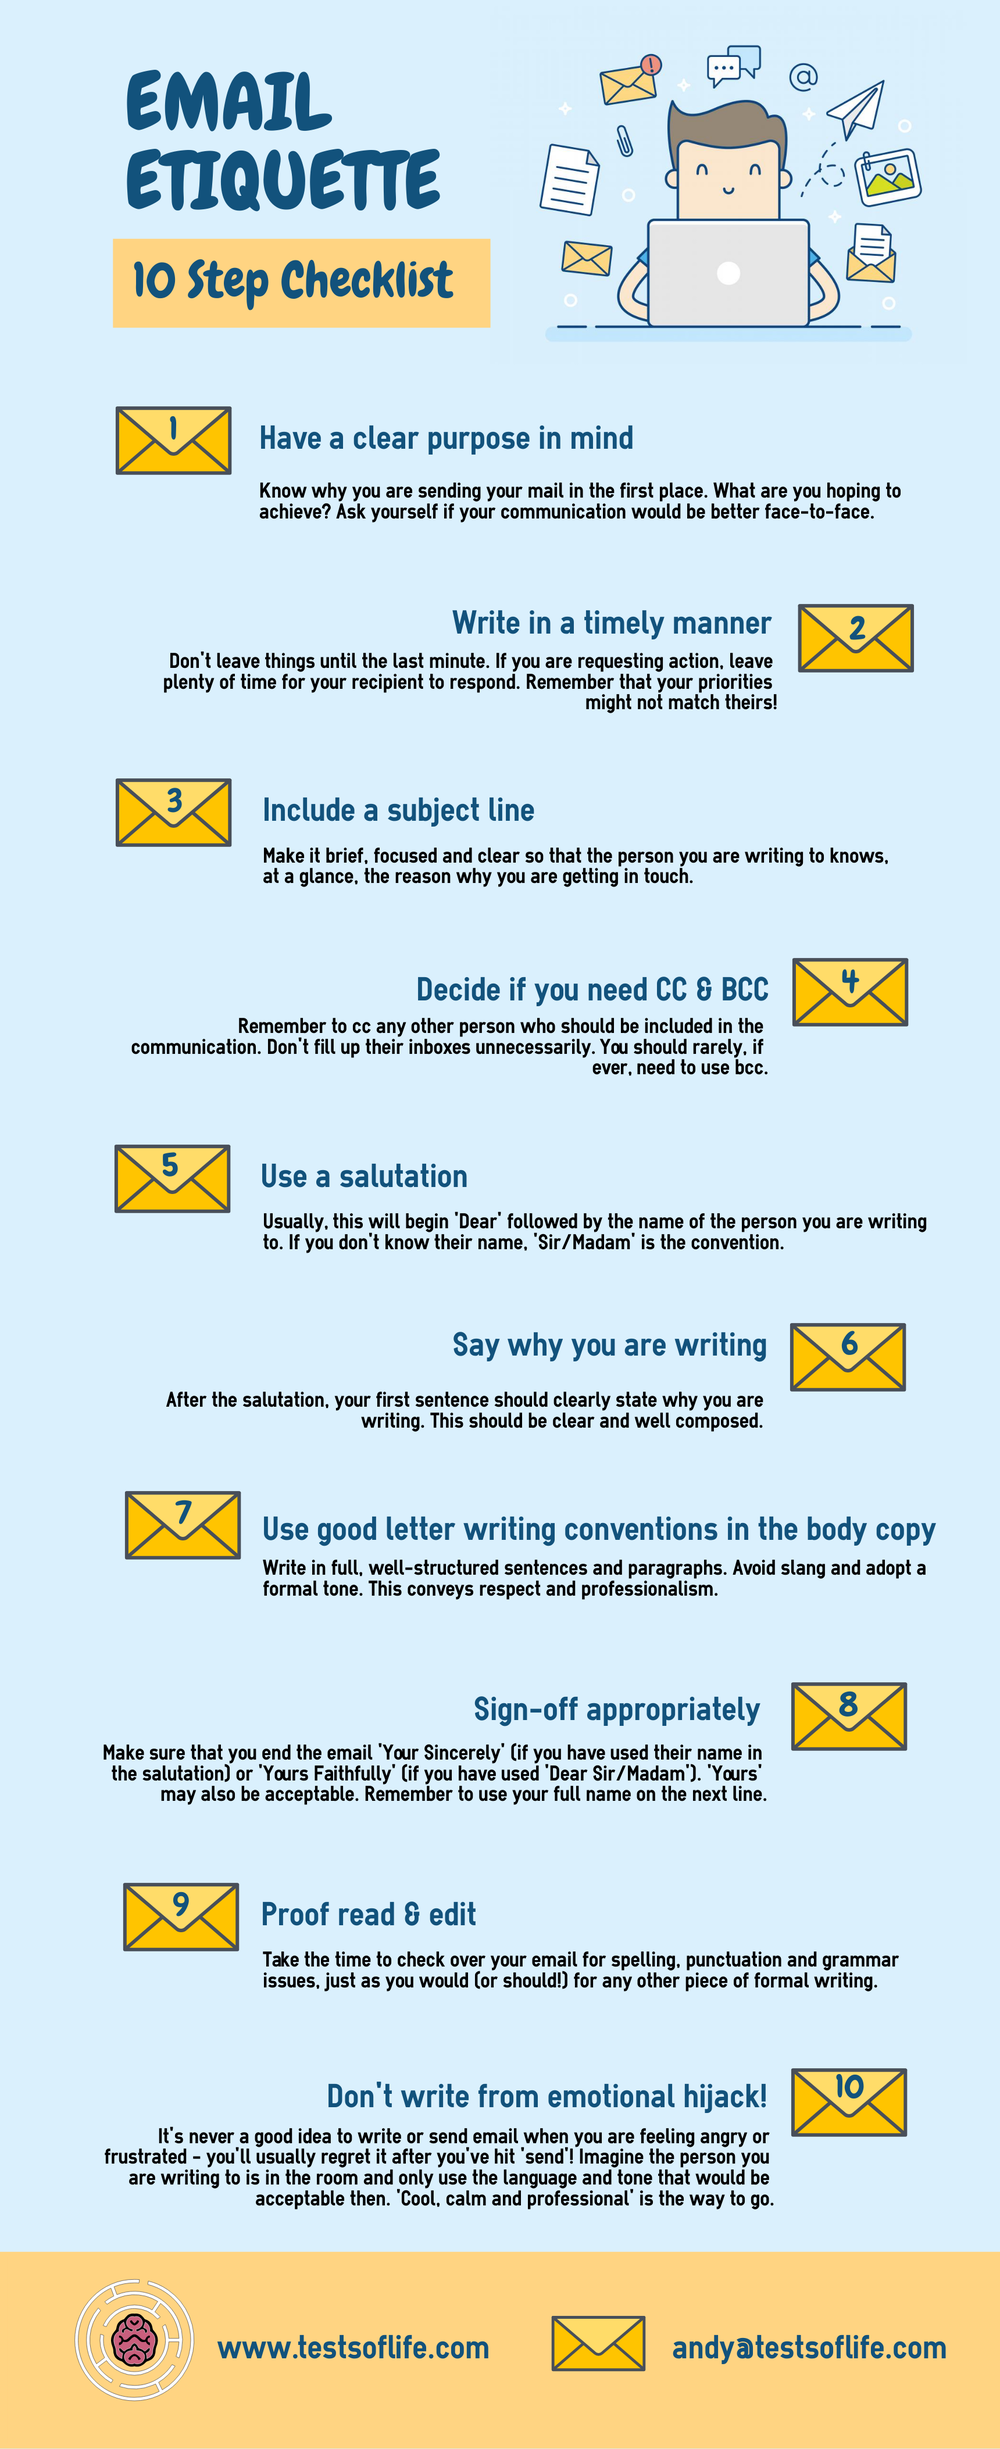 email etiquette infographic.png